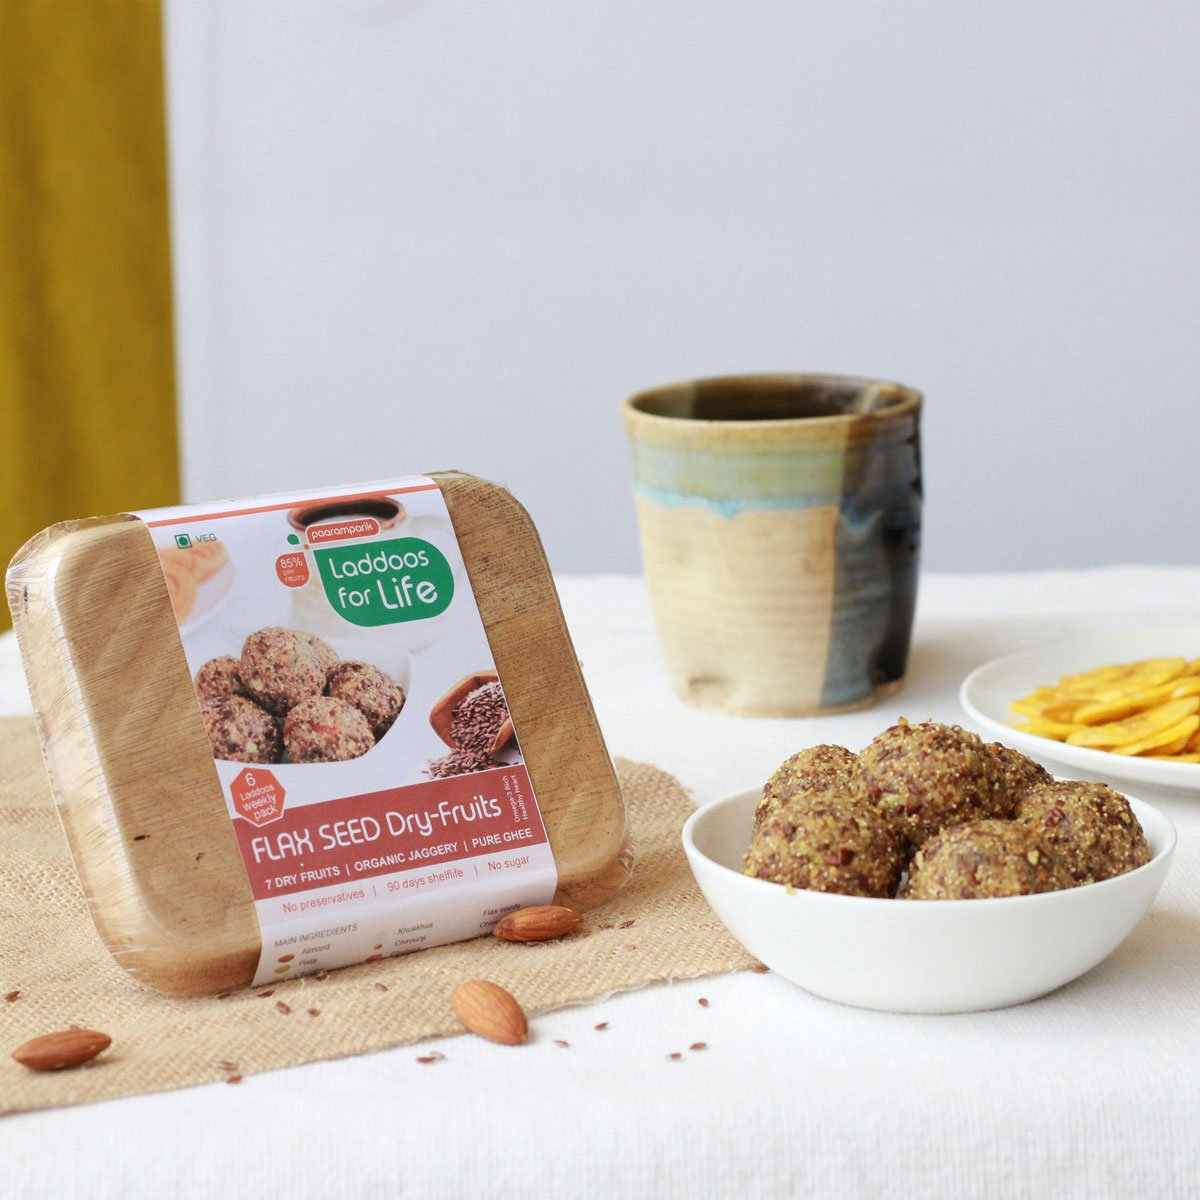 Heart Healthy Flax Seed Dry Fruits Laddoos (Made With Organic Jaggery, Pure Ghee)